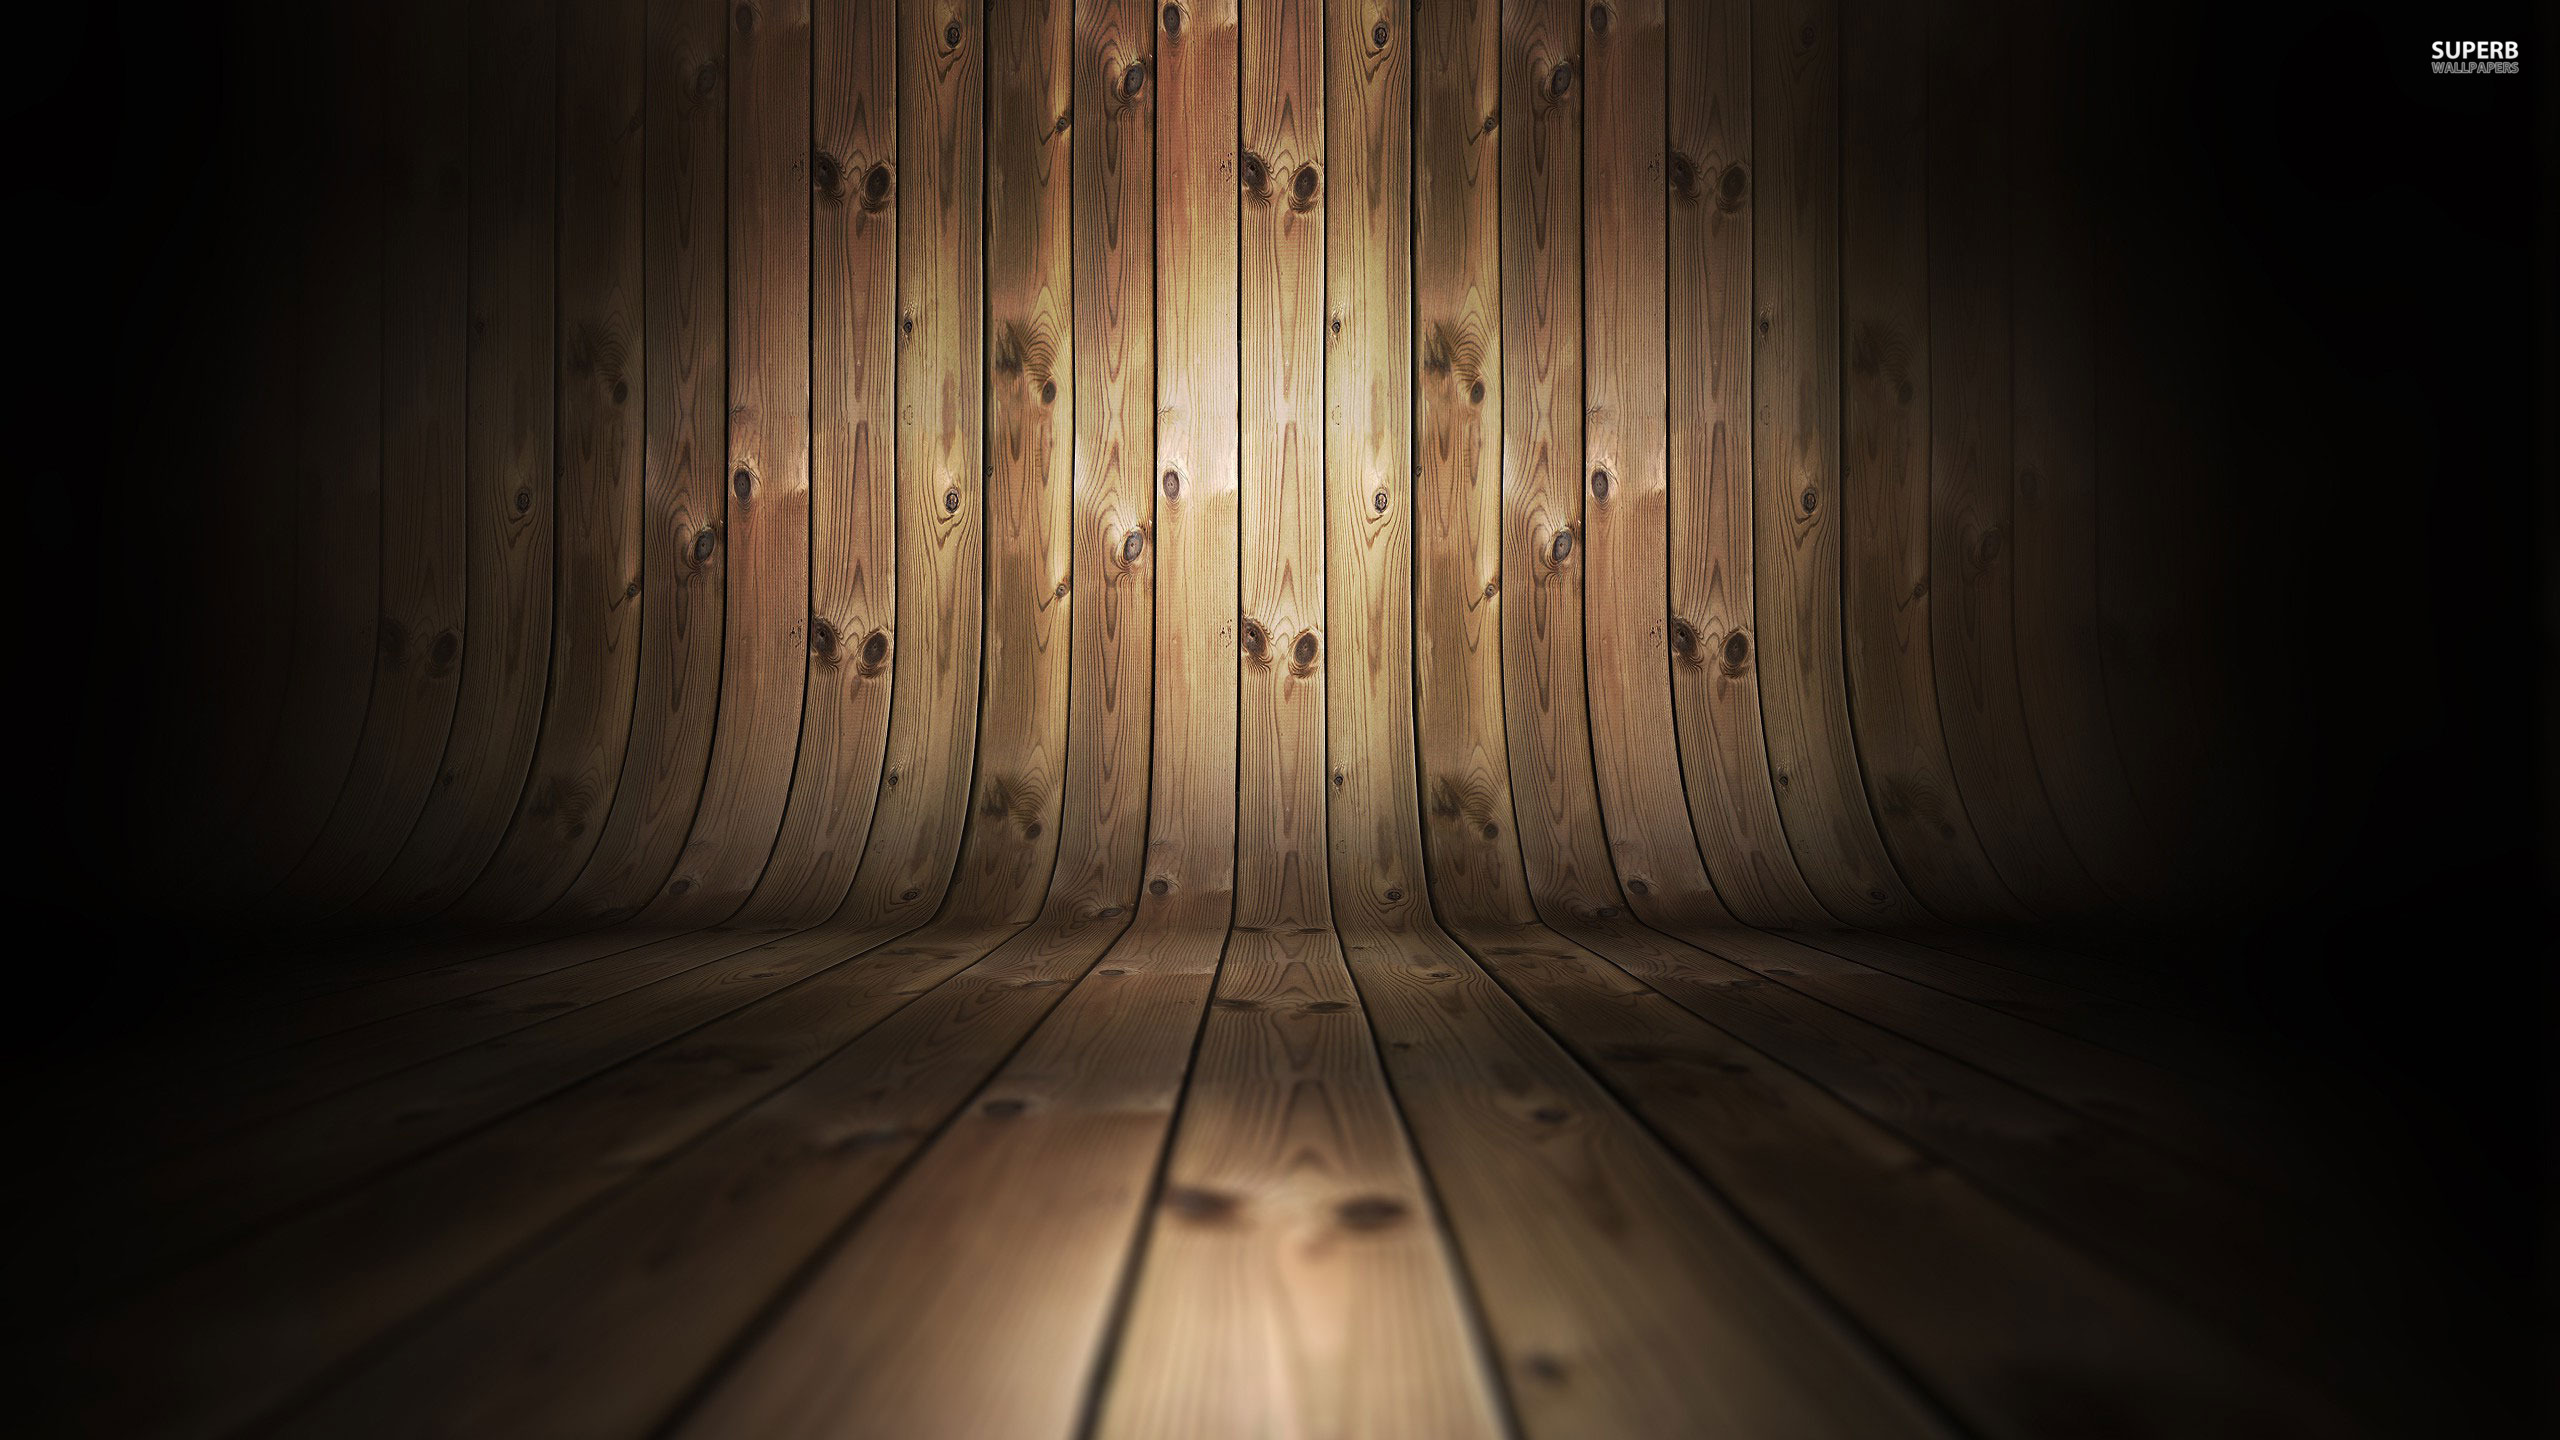 Wallpapersafari: 3D Wood Wallpaper